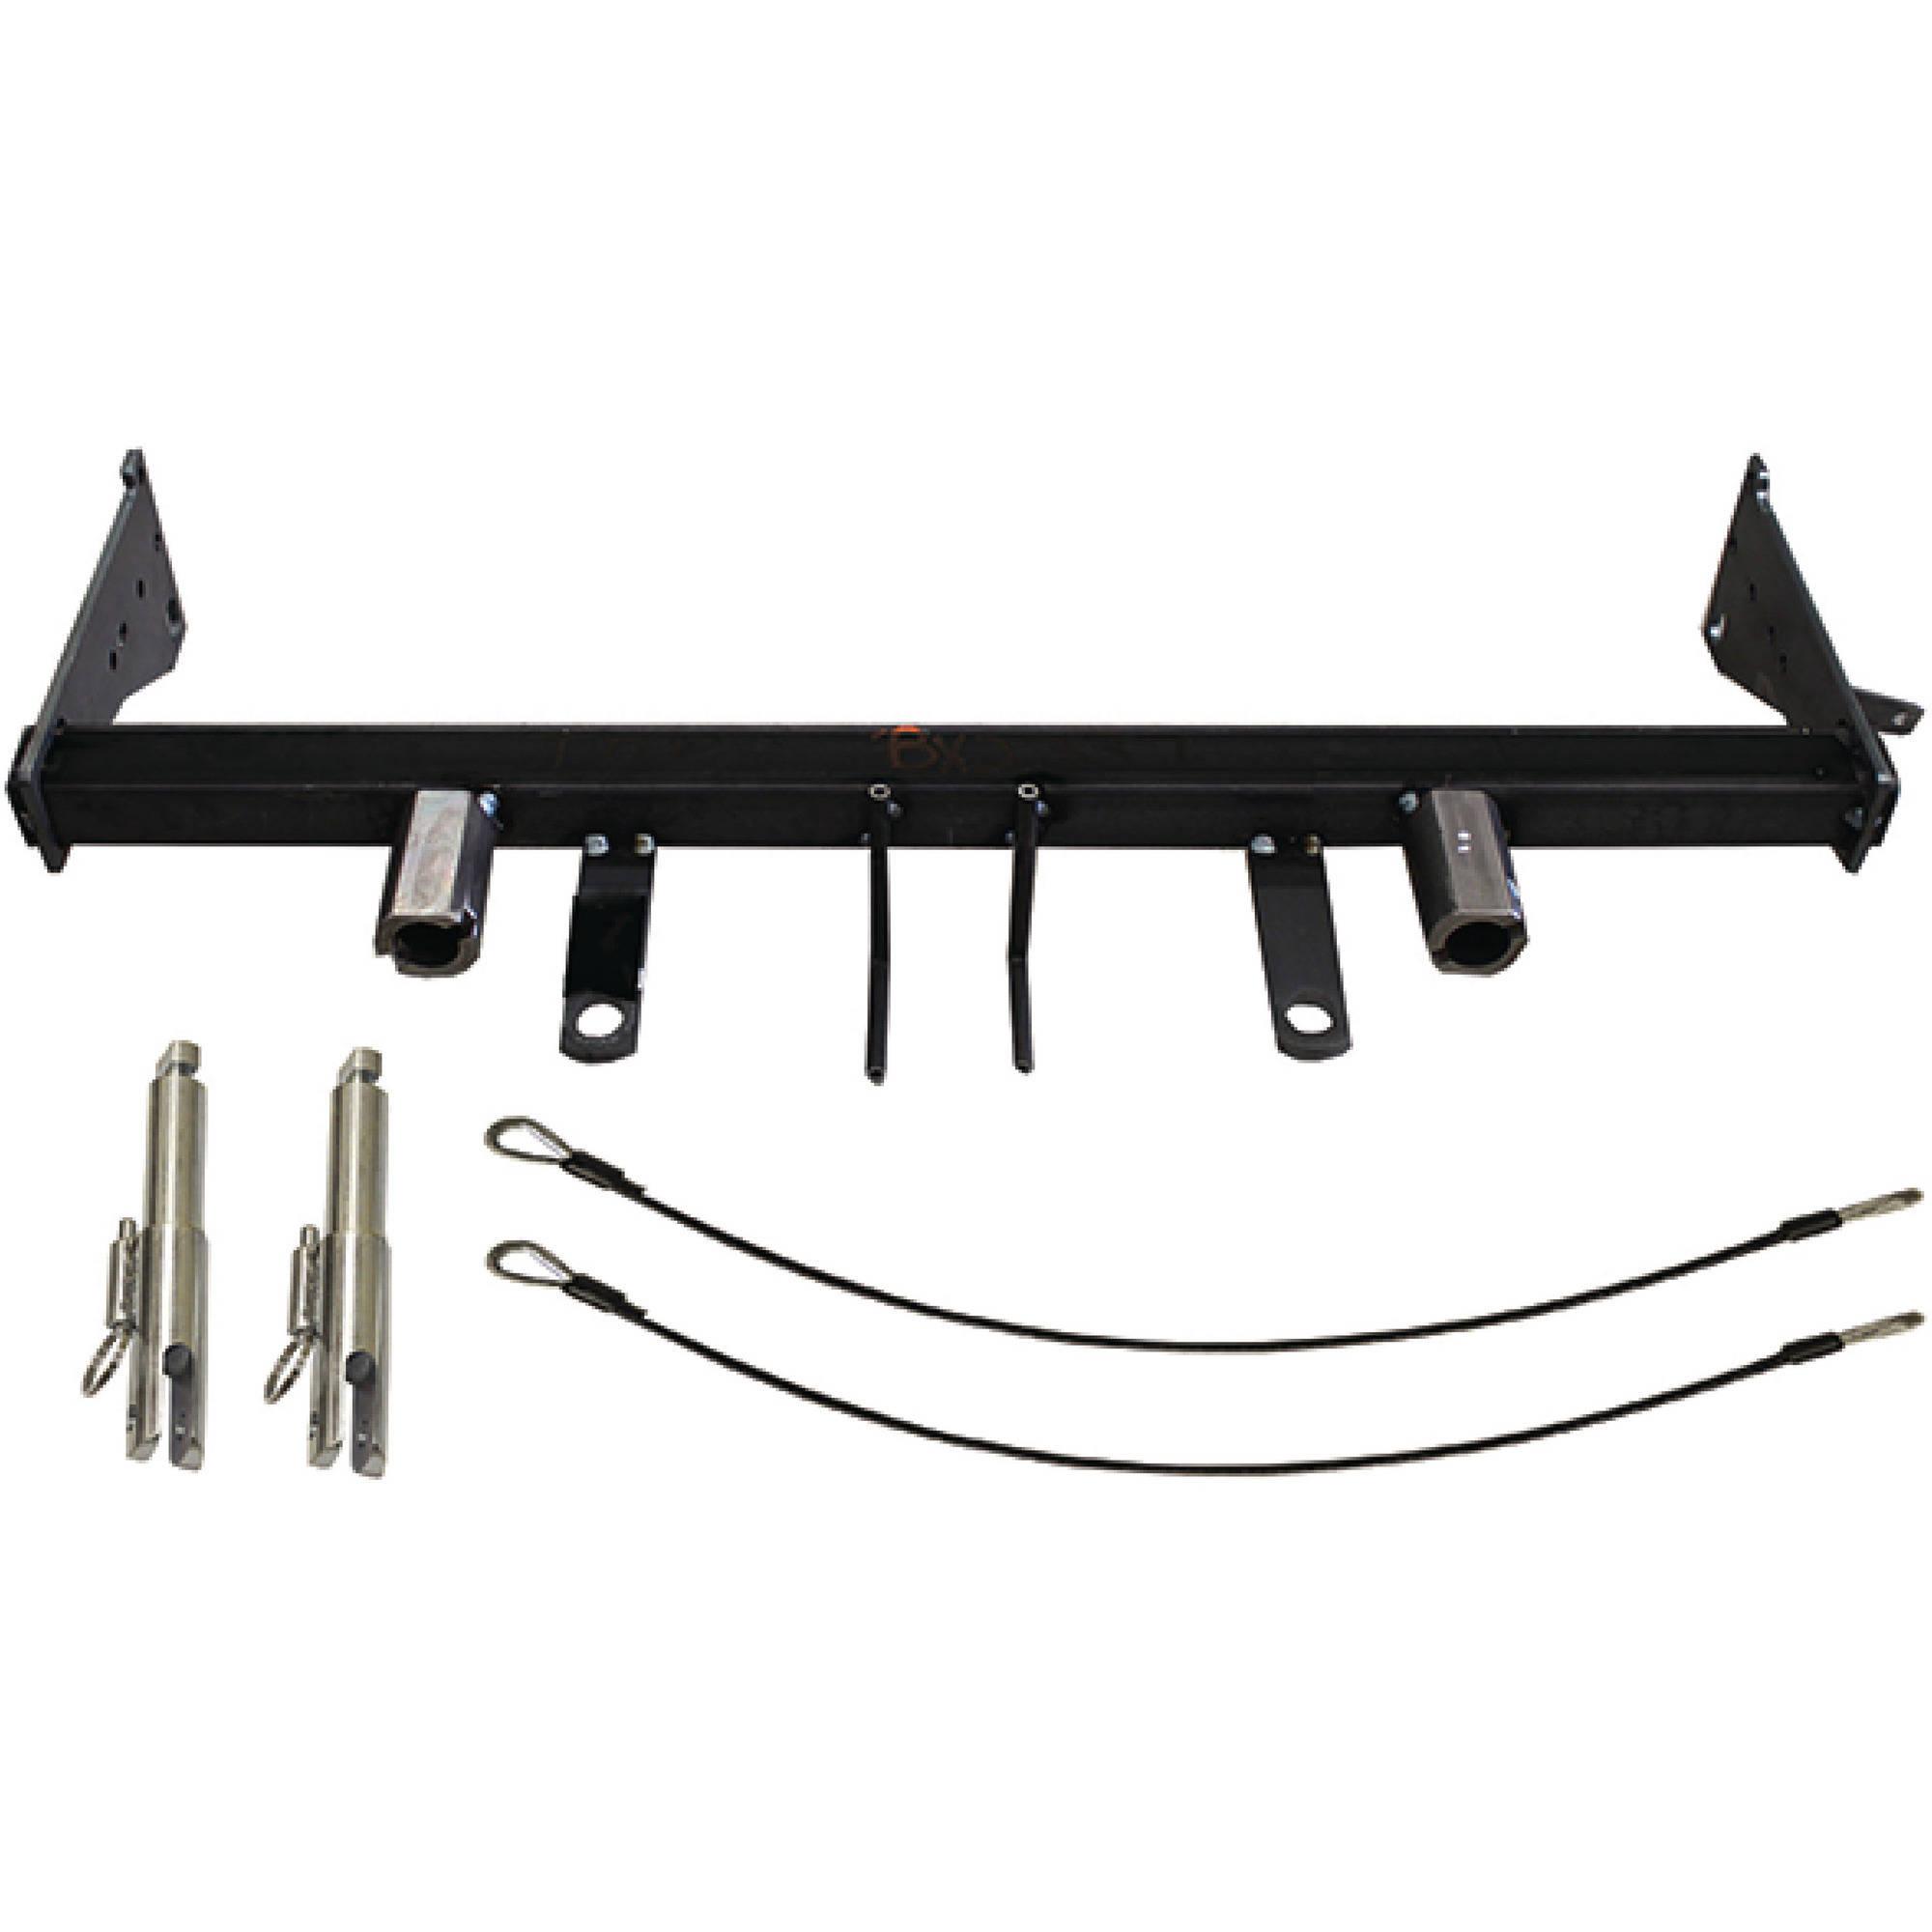 Blue Ox BX1676 Removable Tab RV Tow Baseplates for 2007-2014 GMC Yukon 1500 (Includes Denali) by Blue Ox